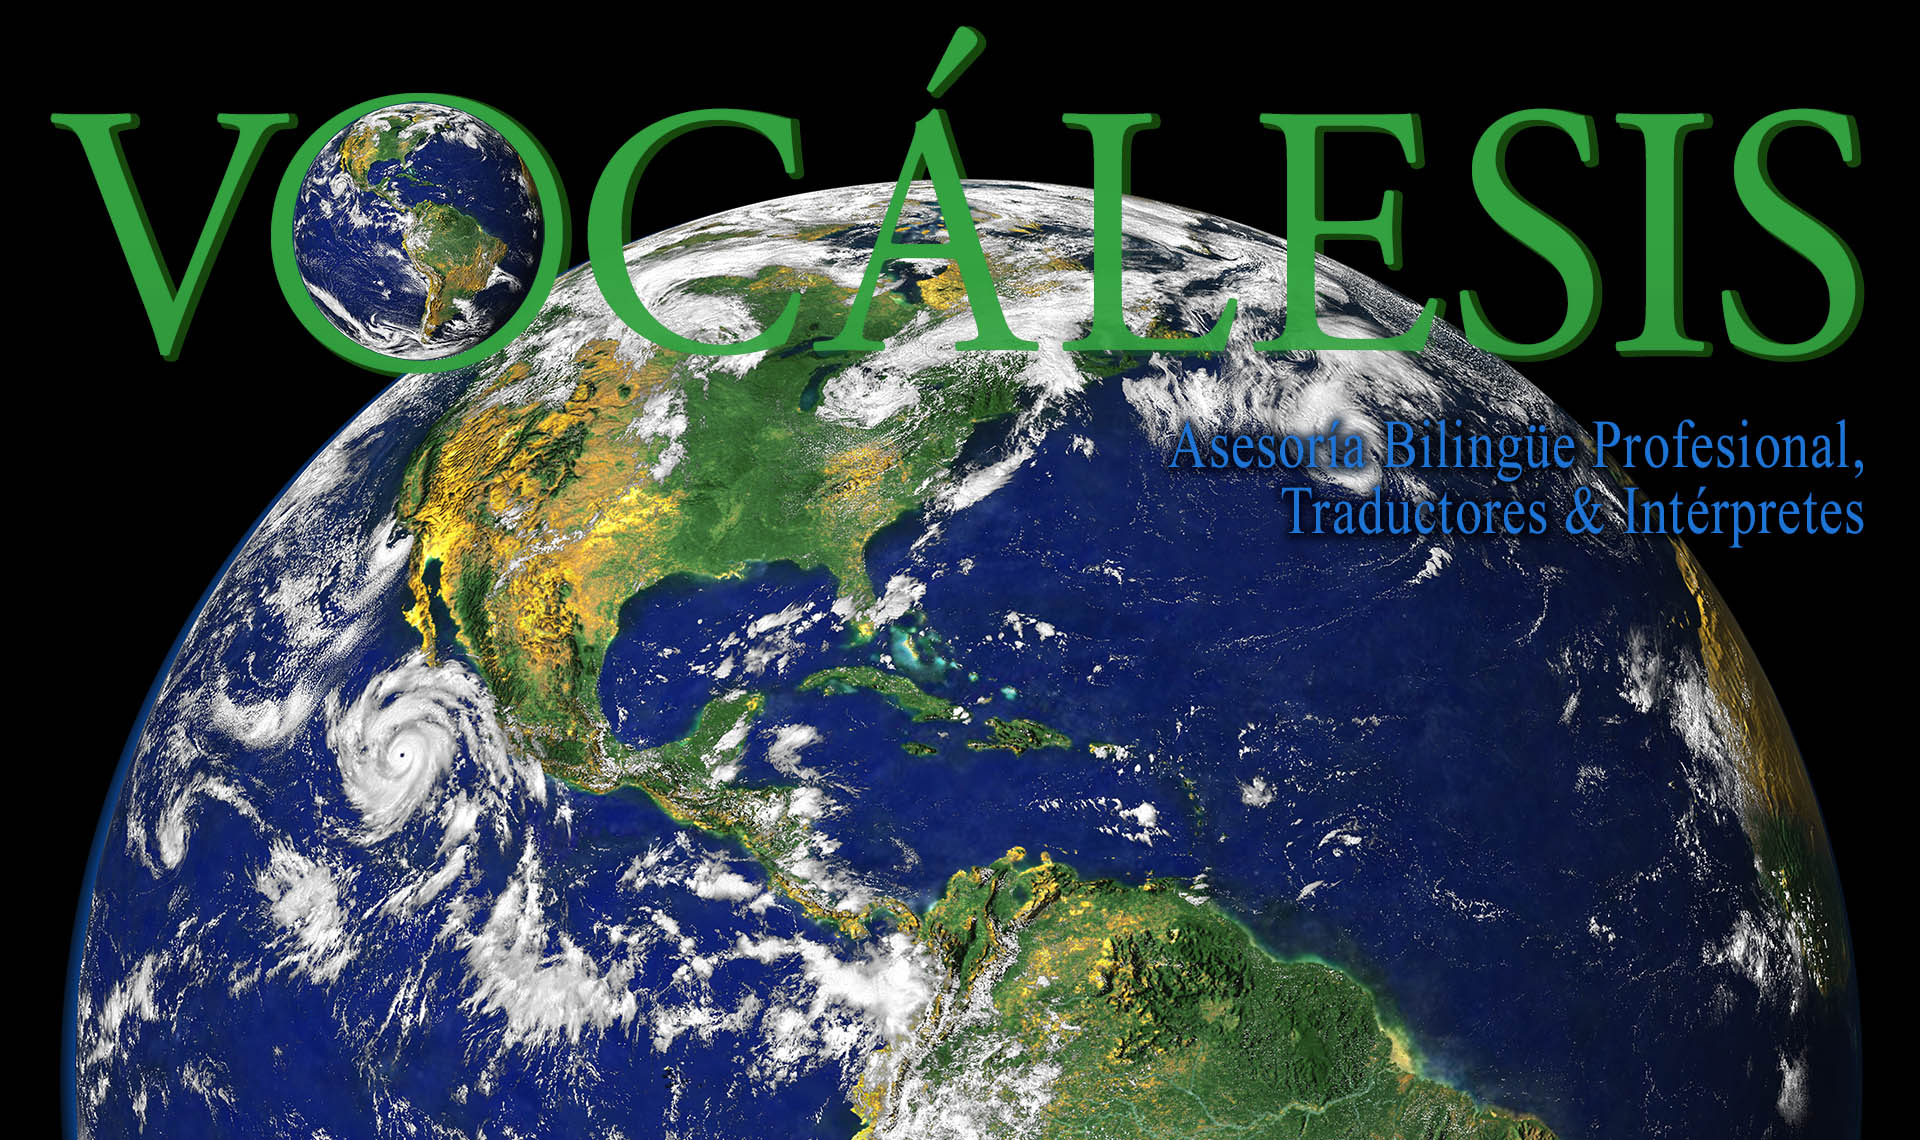 Vocalesis Header-Logo-Marble-06-Earth